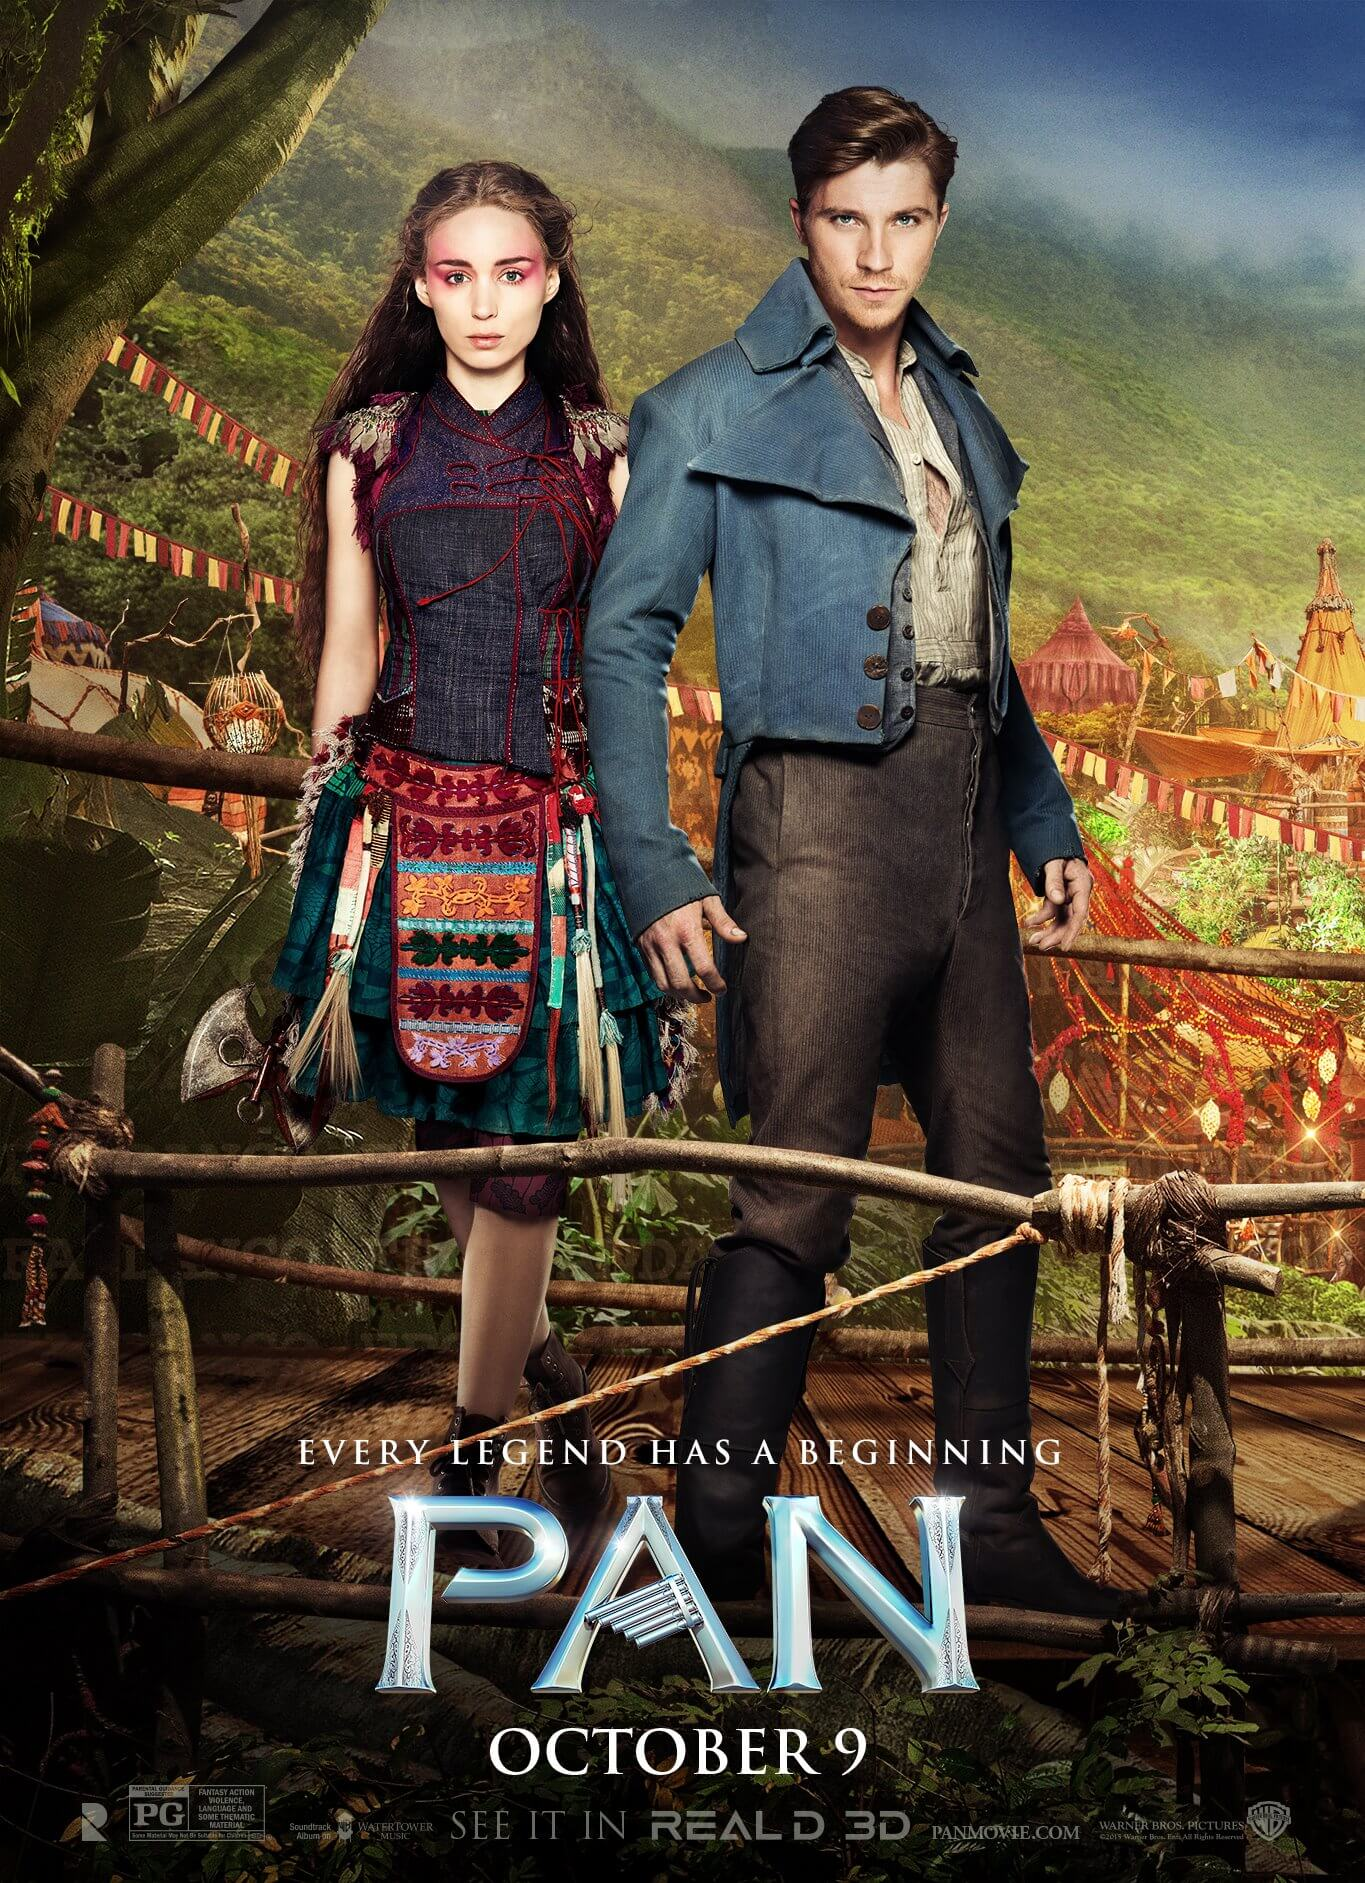 Peter Pan And Tiger Lily Poster